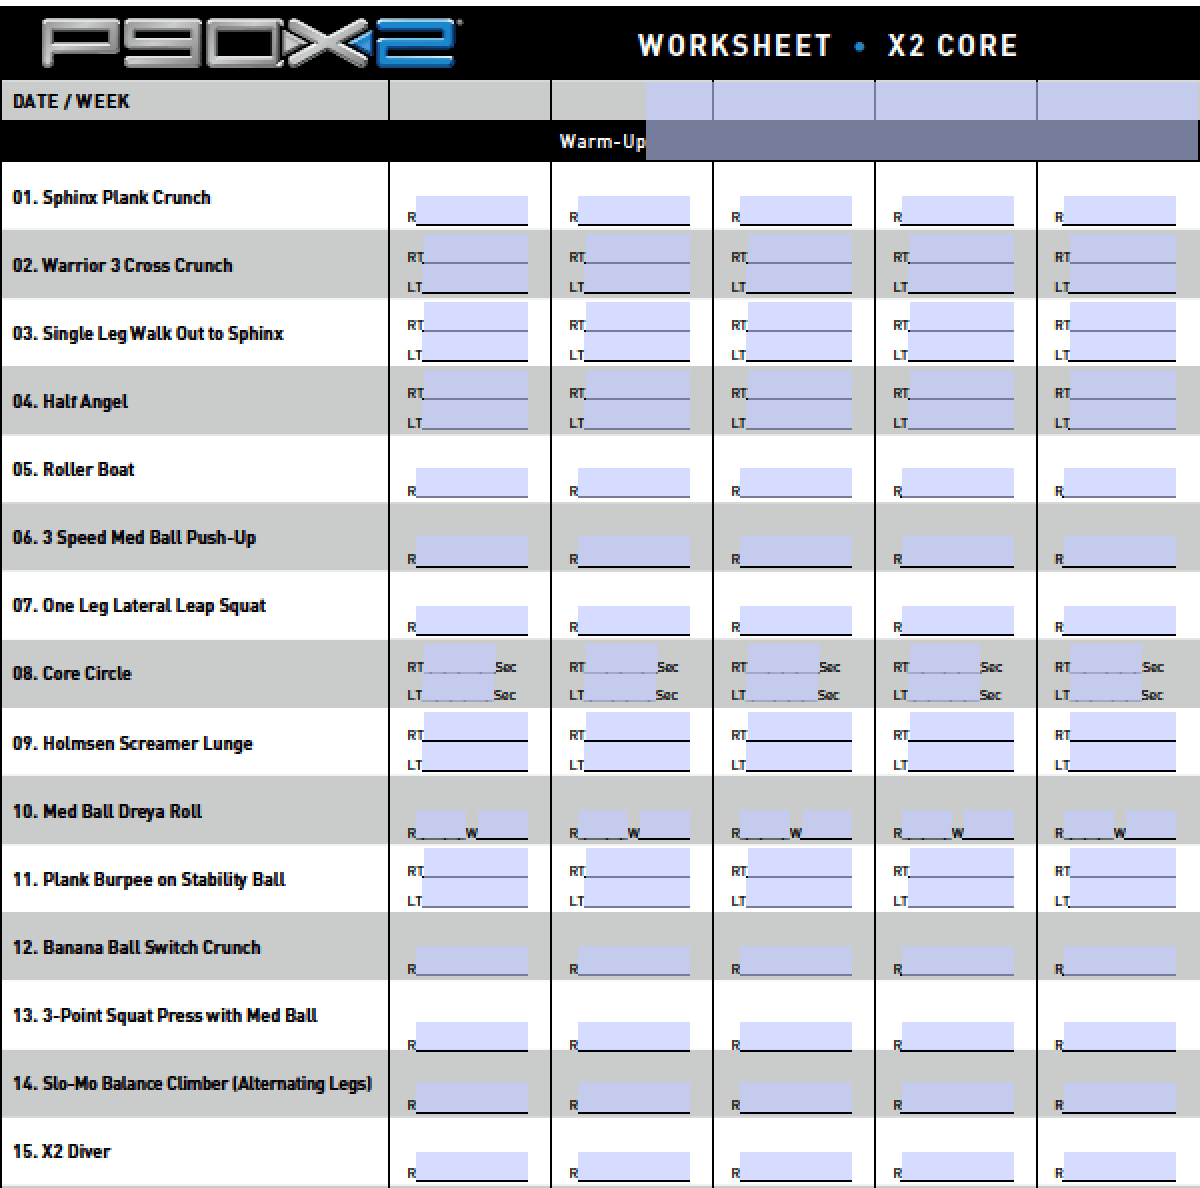 P90x2 Workout Sheets